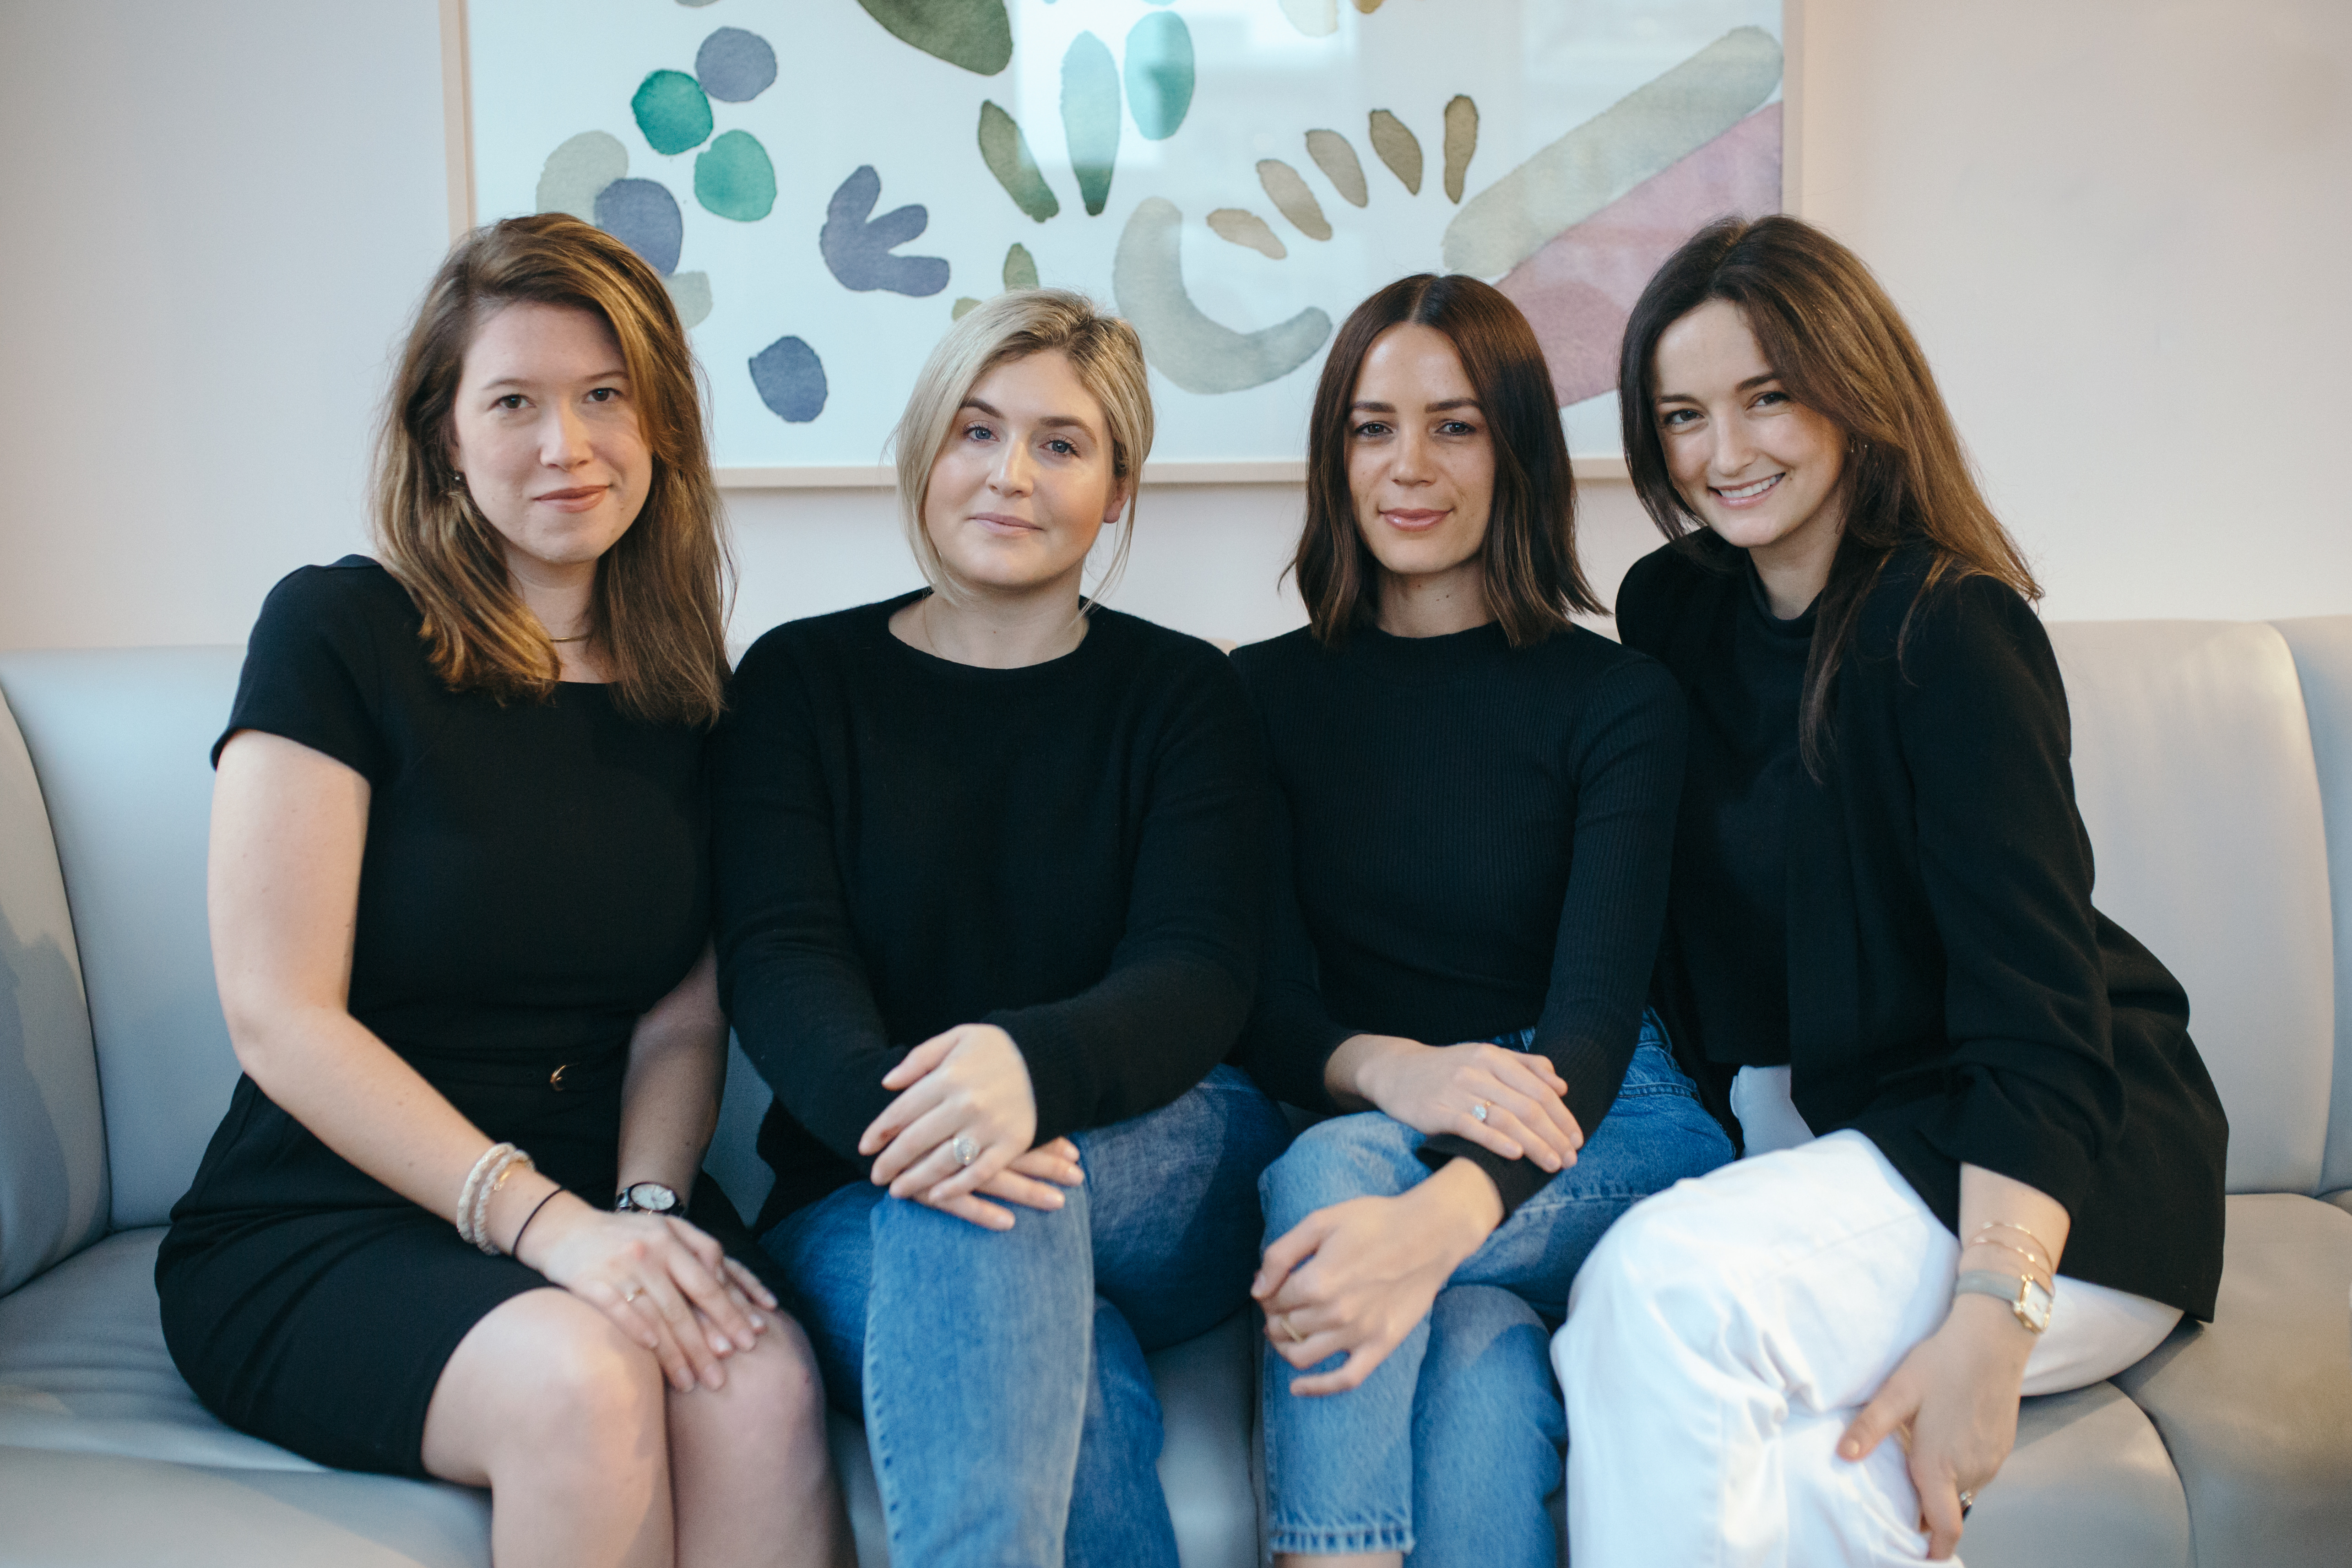 Maison D'Enfants team of staff women in business New York